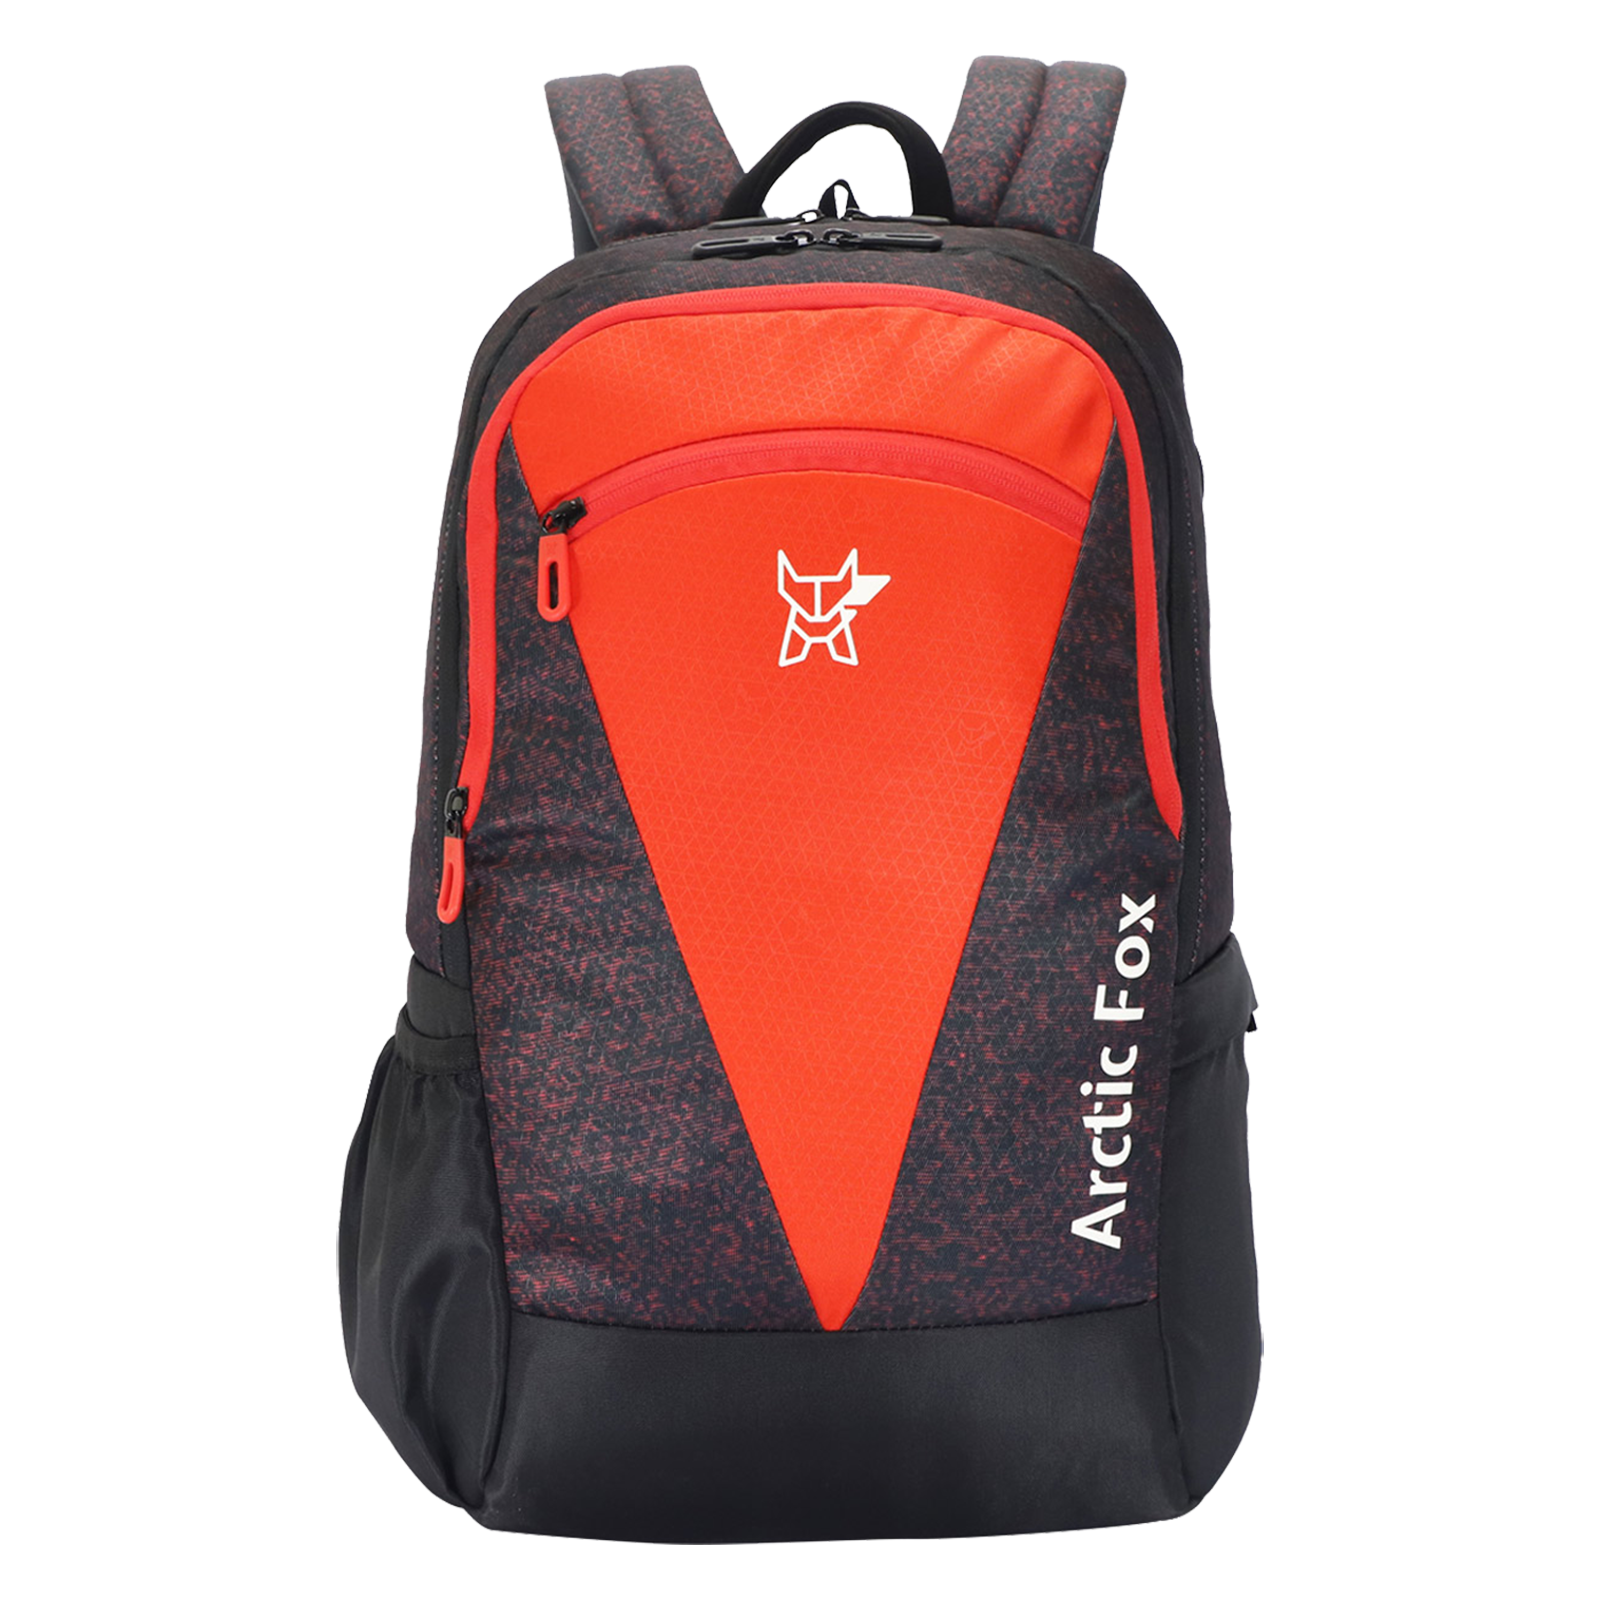 Arctic Fox Glitch 36 Litres Polyester Backpack (Smart Organizer, FJUBPKFIRON034036, Fiery Red)_1